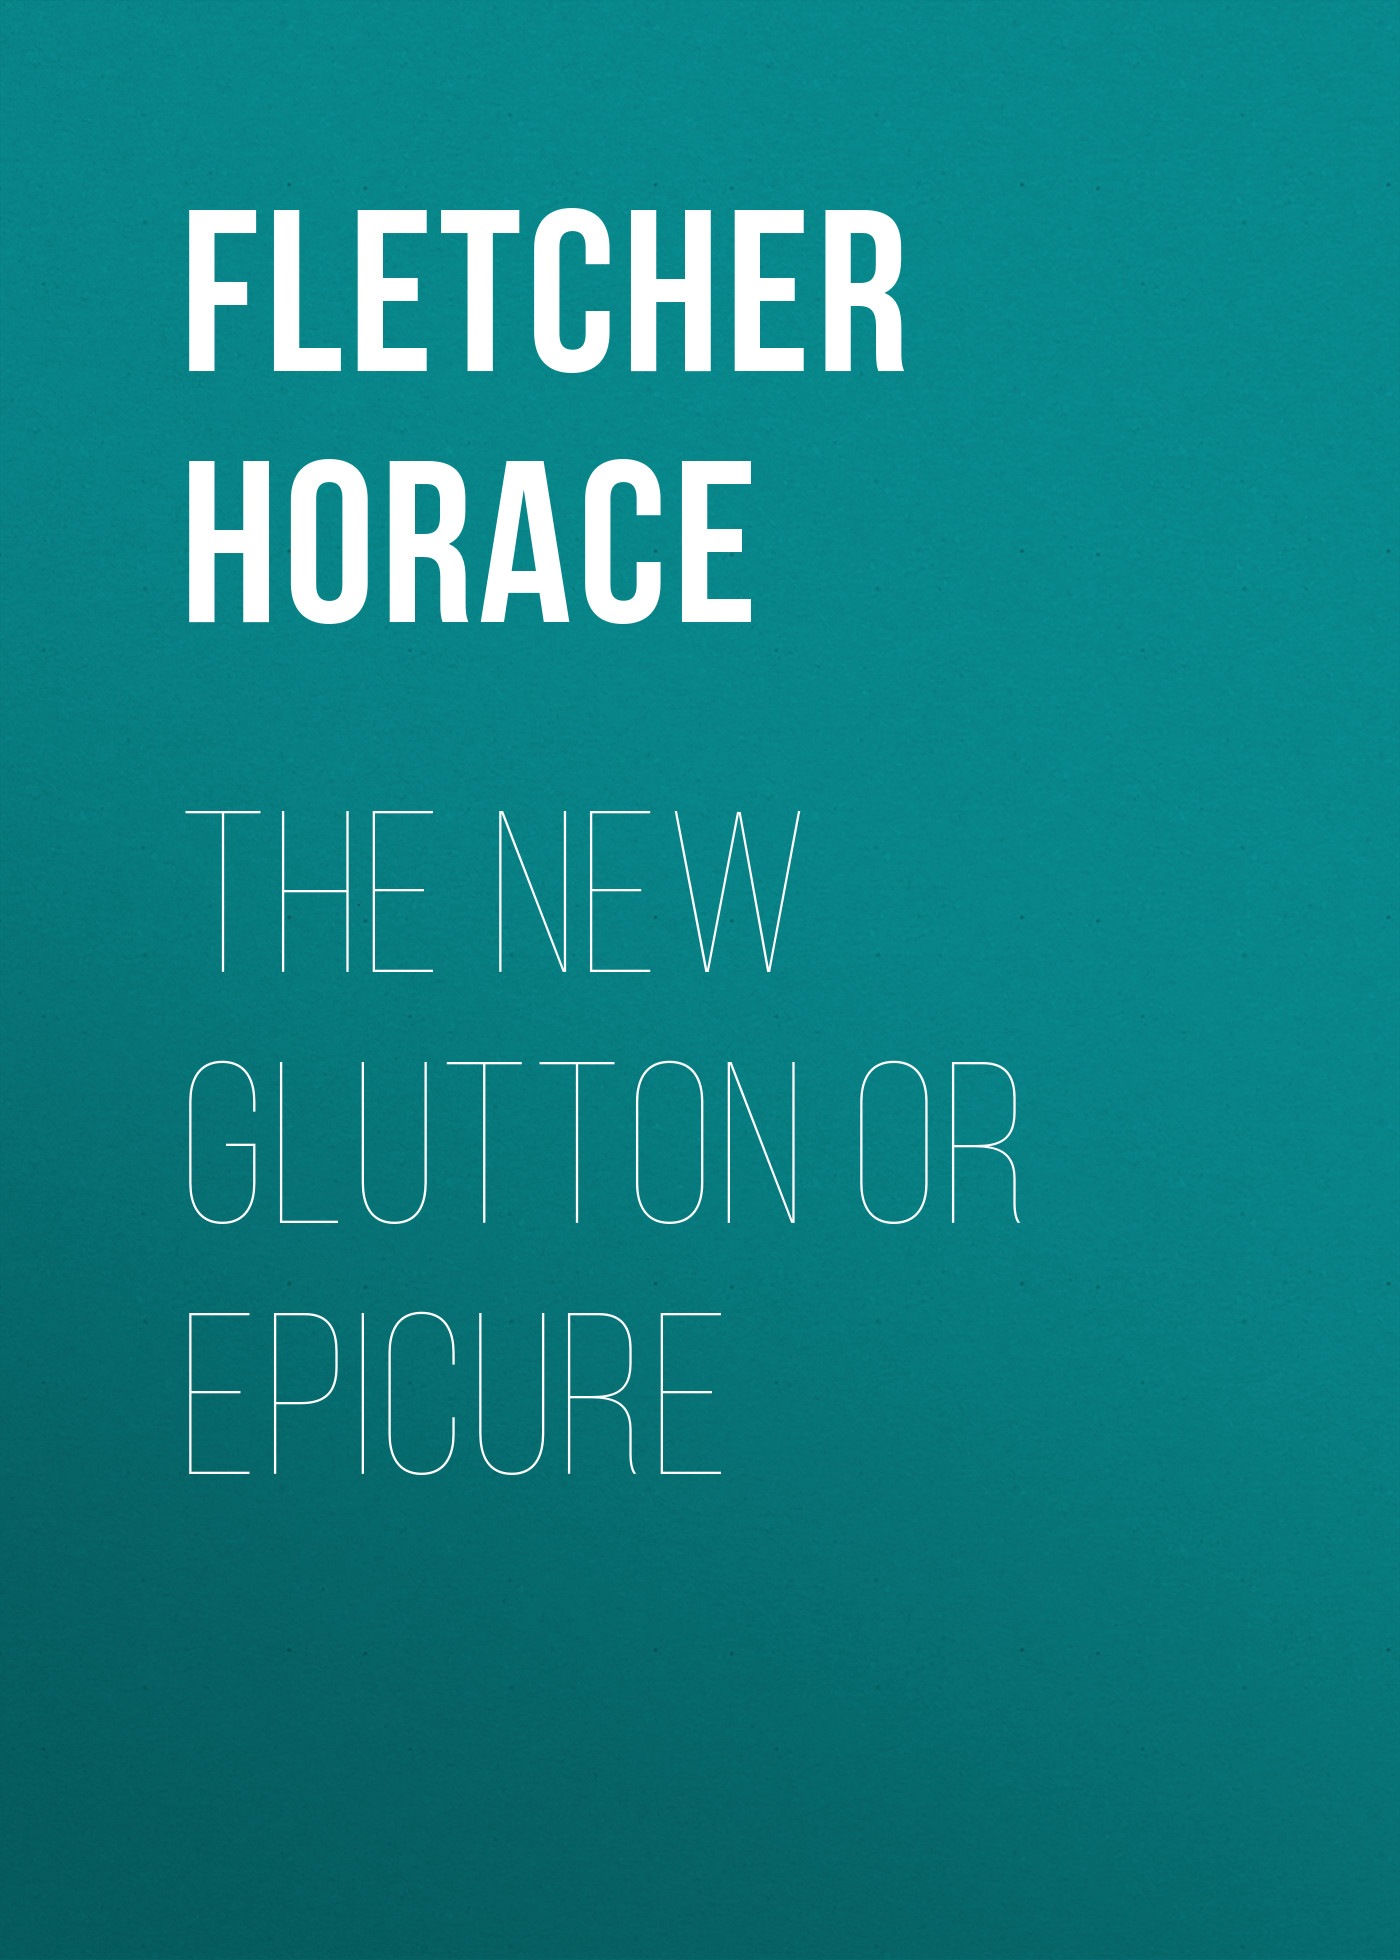 Fletcher Horace The New Glutton or Epicure fletcher horace the new glutton or epicure